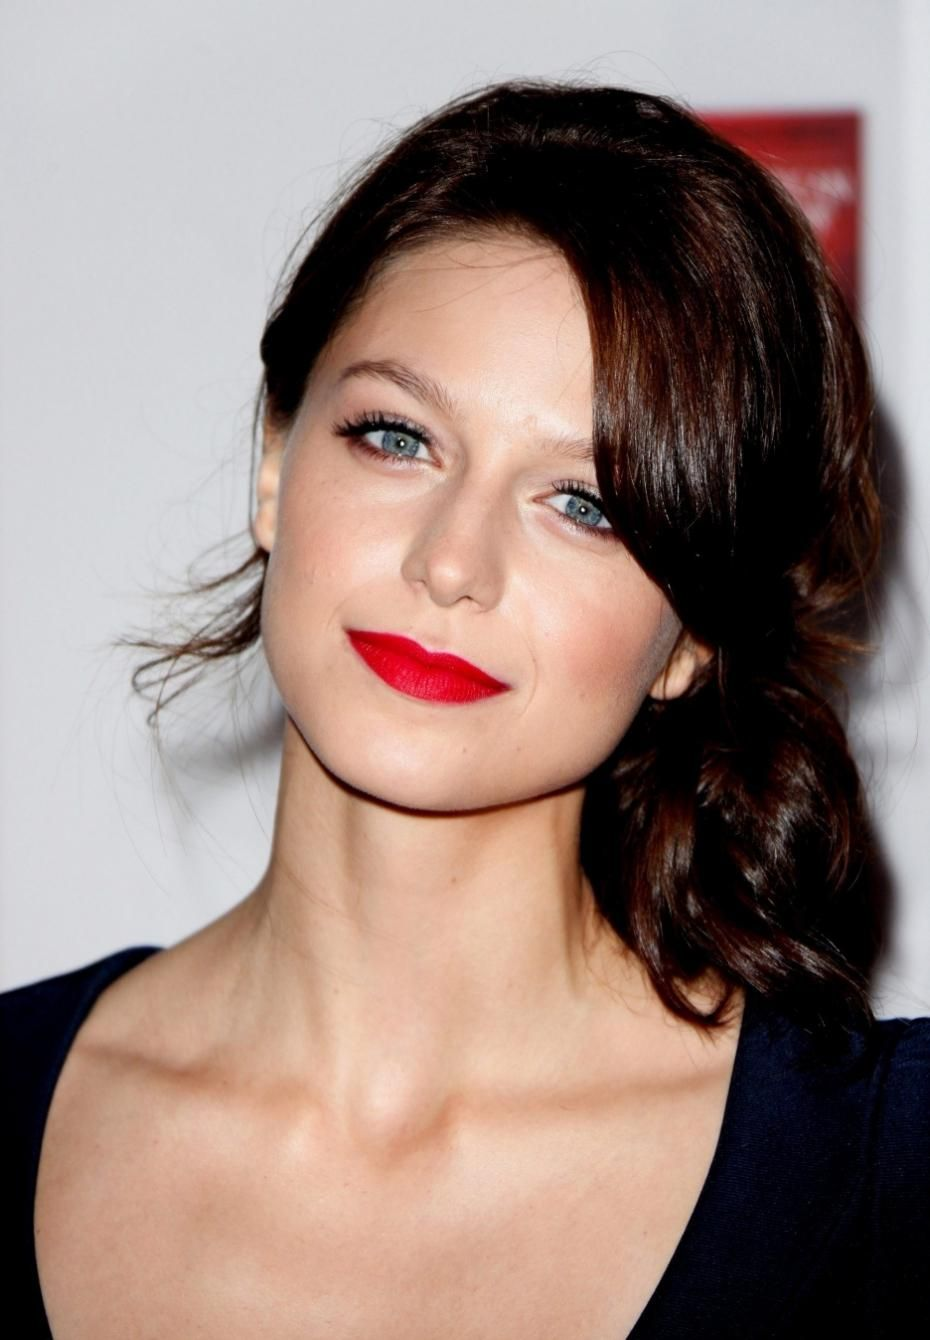 Melissa Benoist  17 Best images about DC's Supergirl - Melissa Benoist on Pinterest |  Supergirl, Melissa benoist and Glee cast